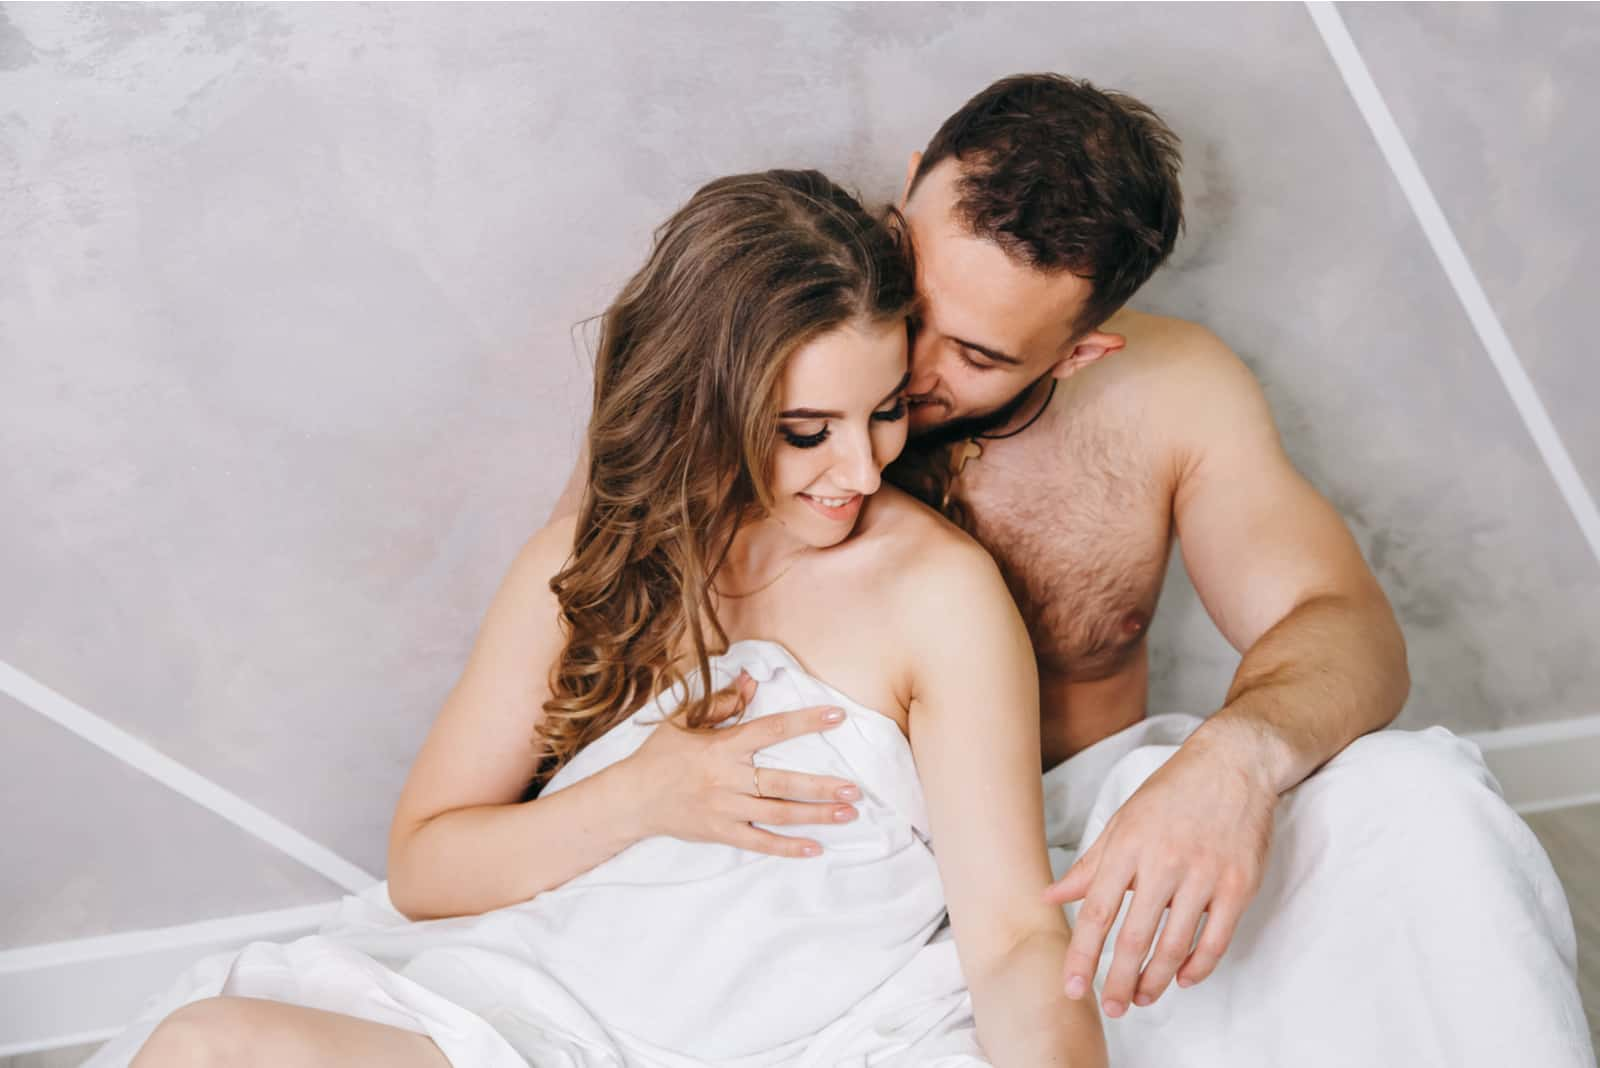 a man caresses a woman in bed